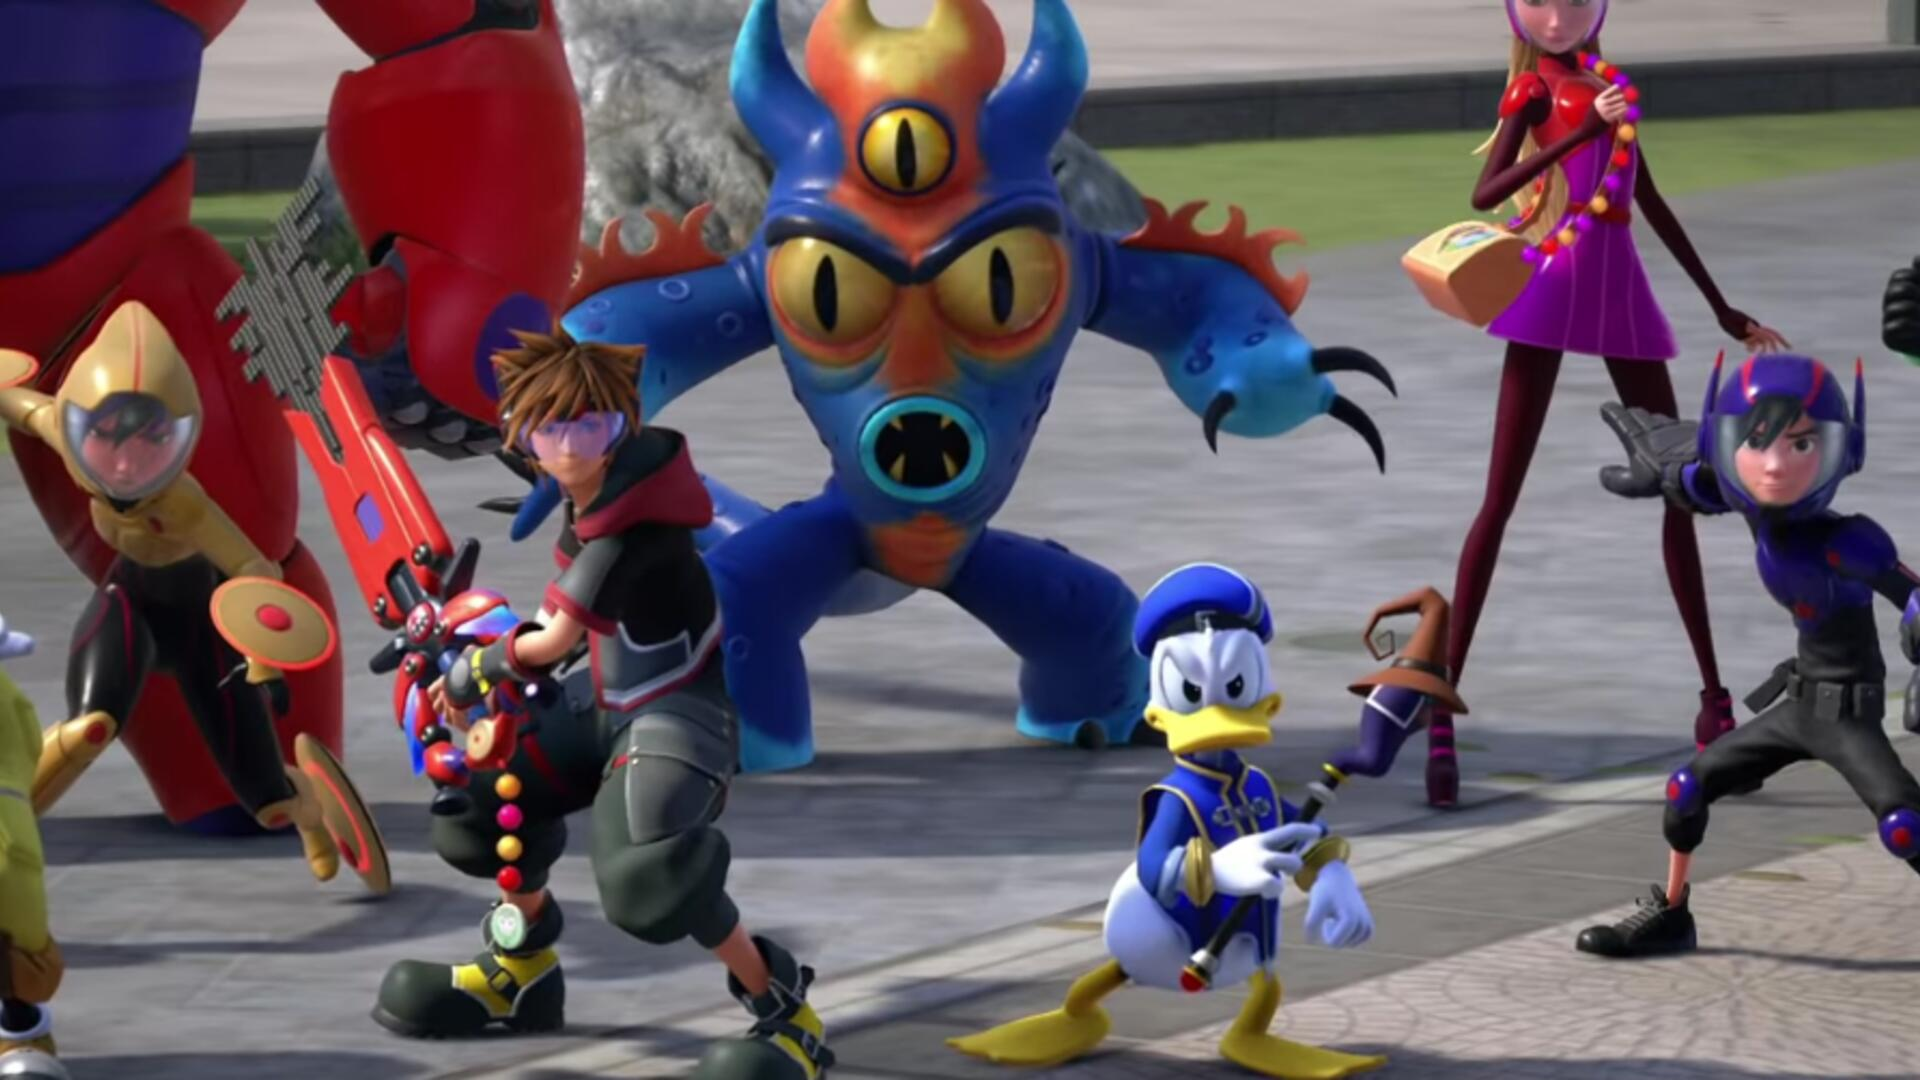 After Five Long Years, Kingdom Hearts 3 is Finally Finished